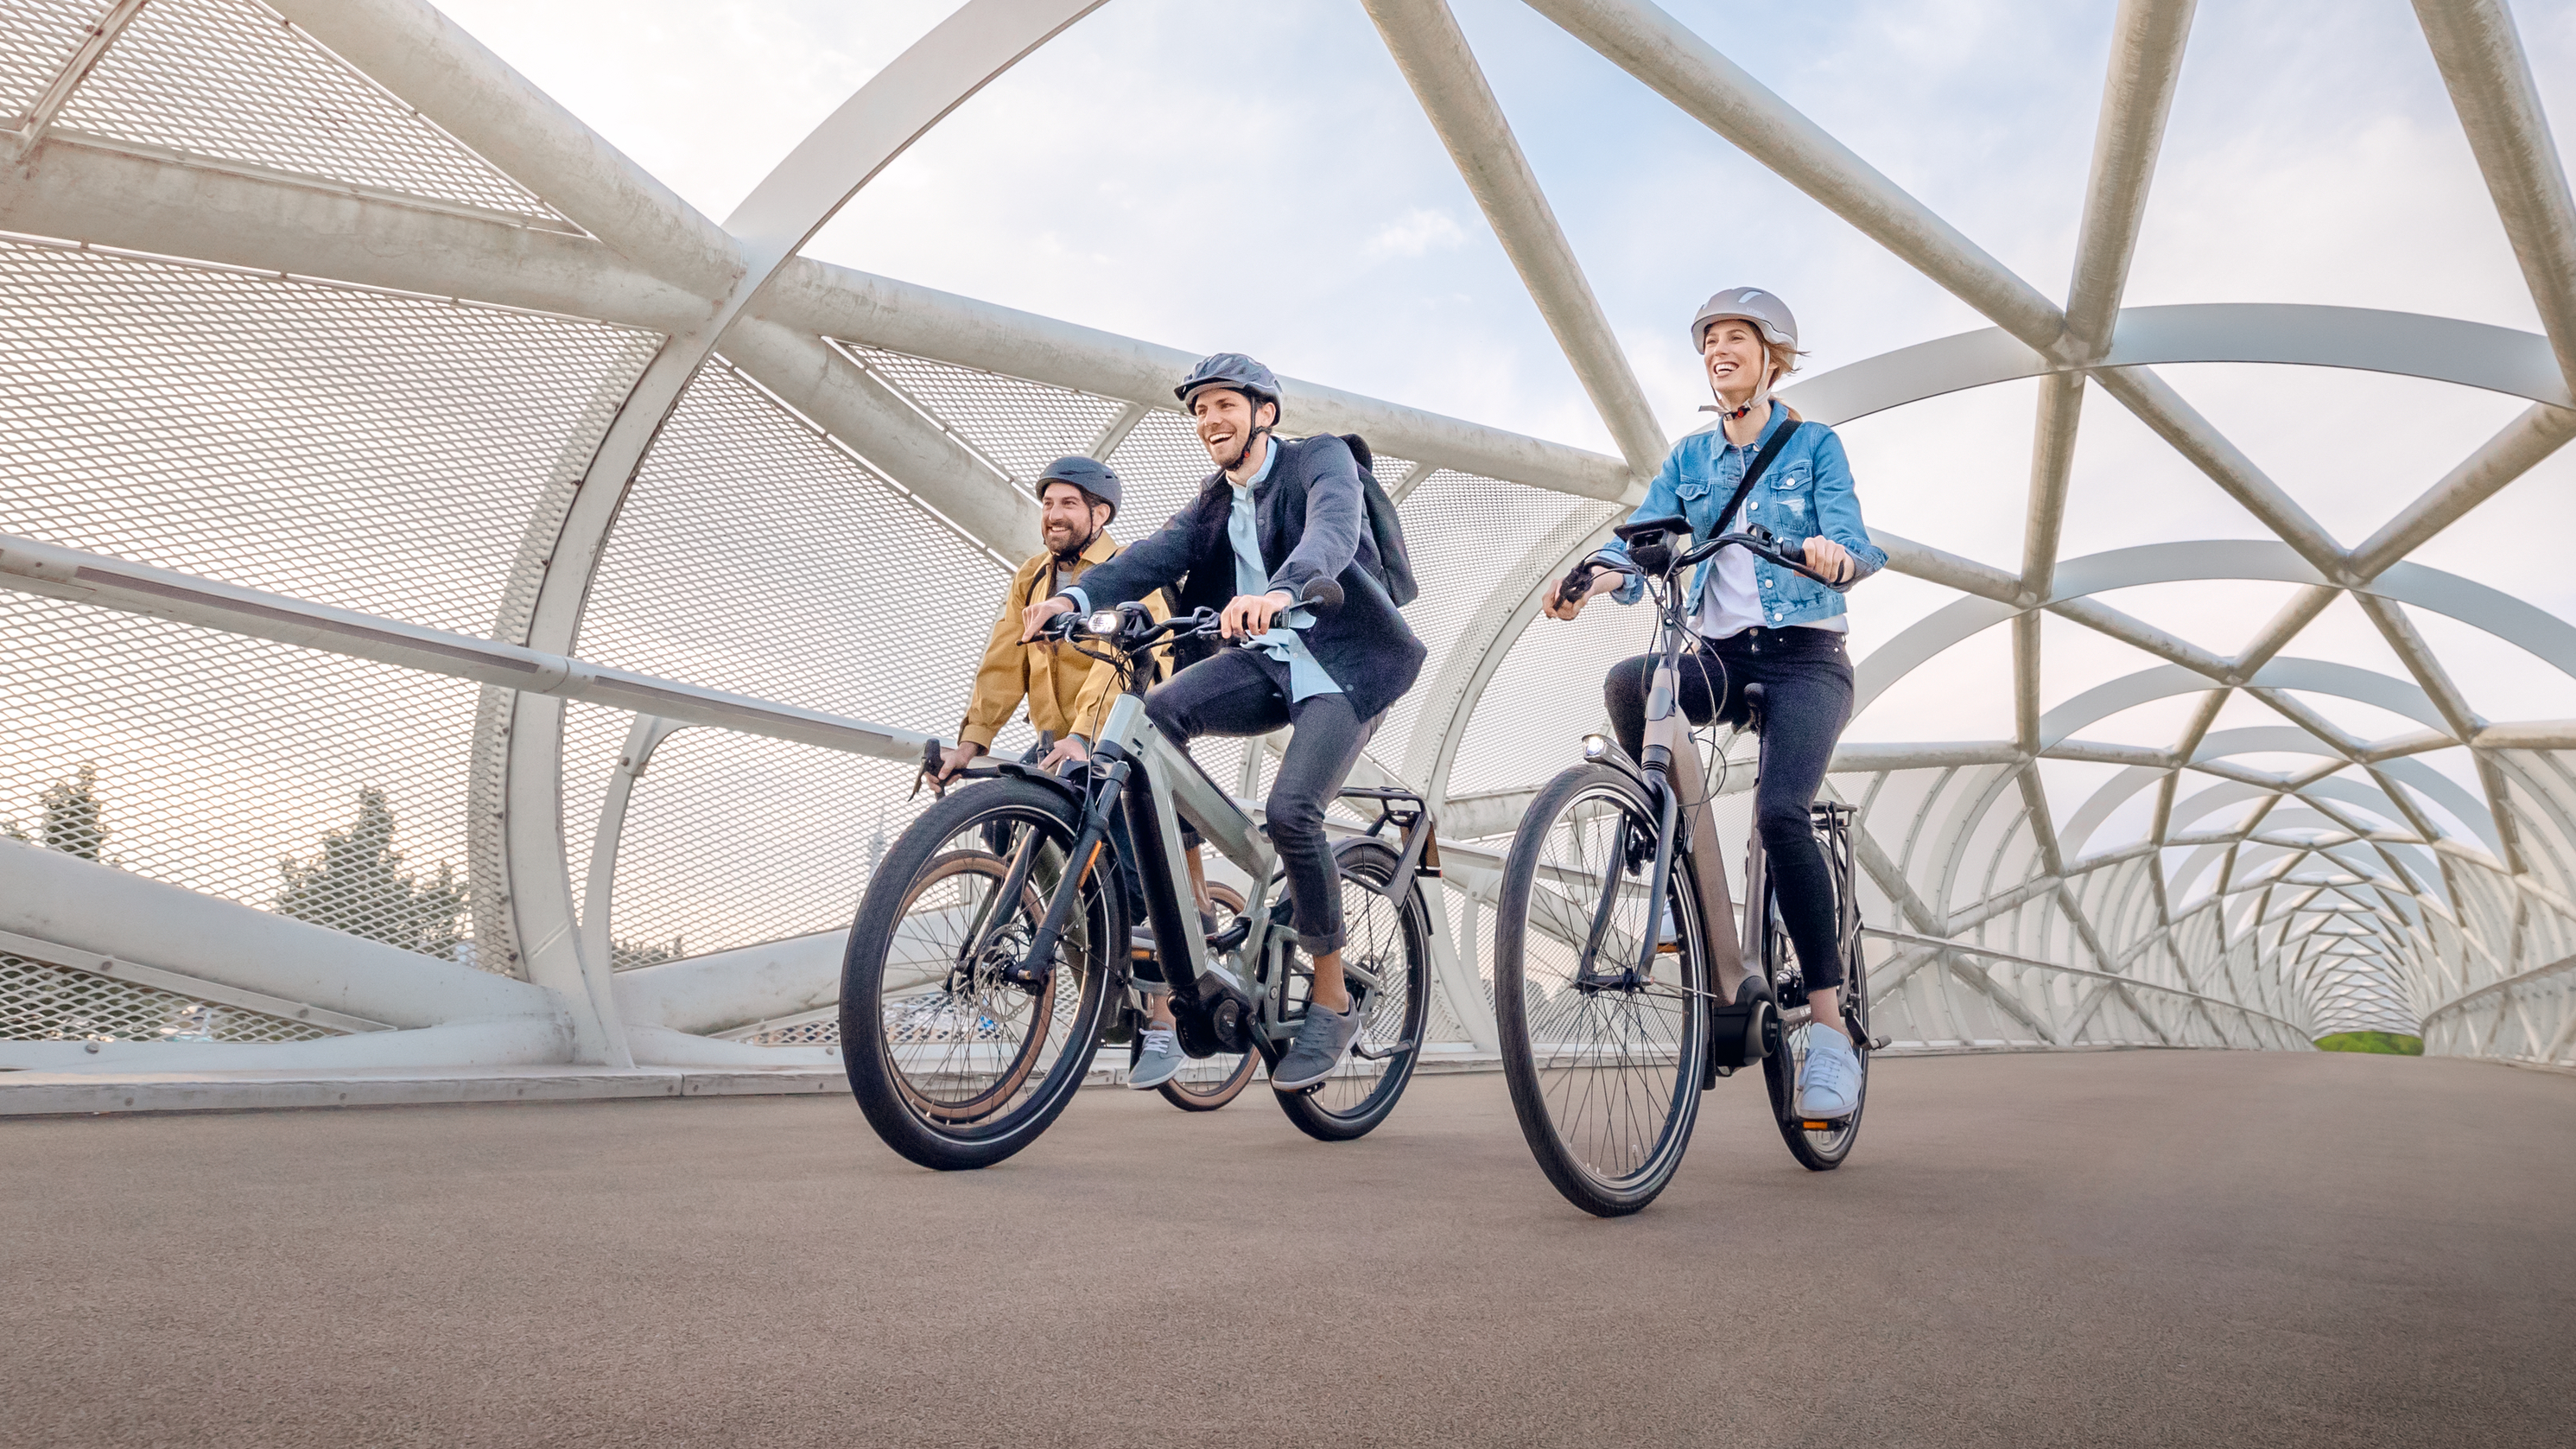 Greater safety for eBikers - Bosch Media Service